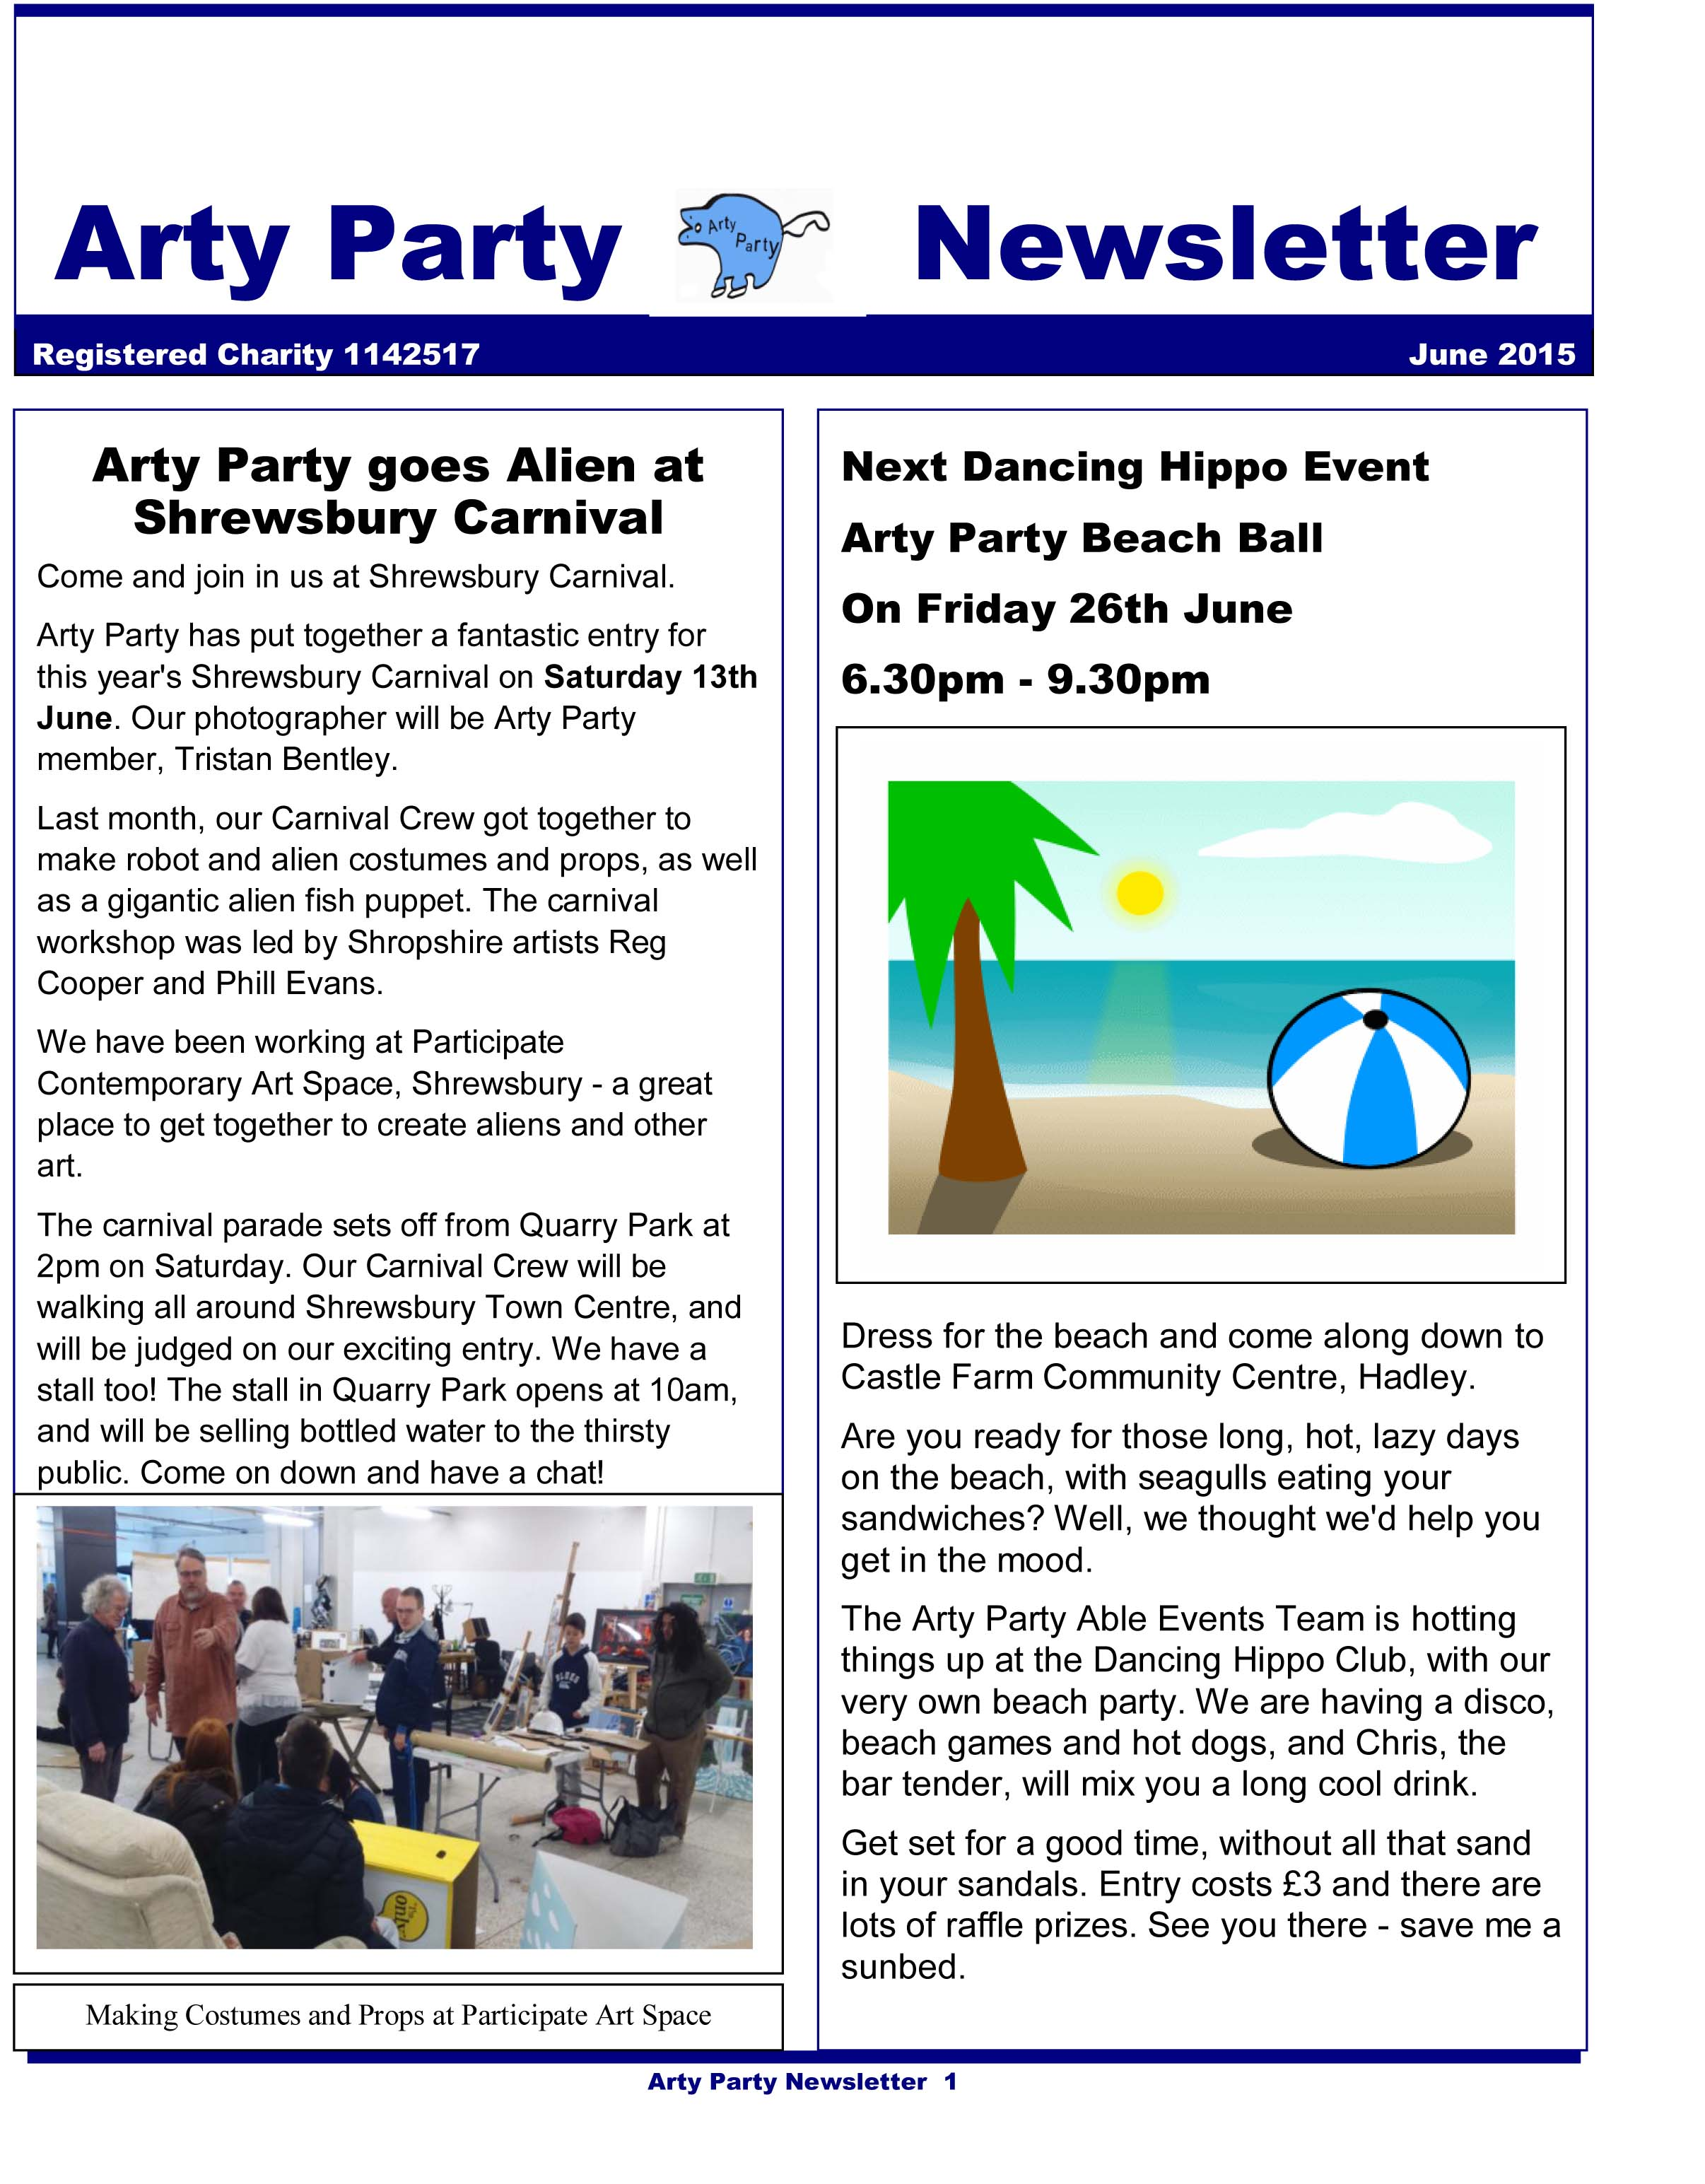 Arty Party Newsletter June 2015